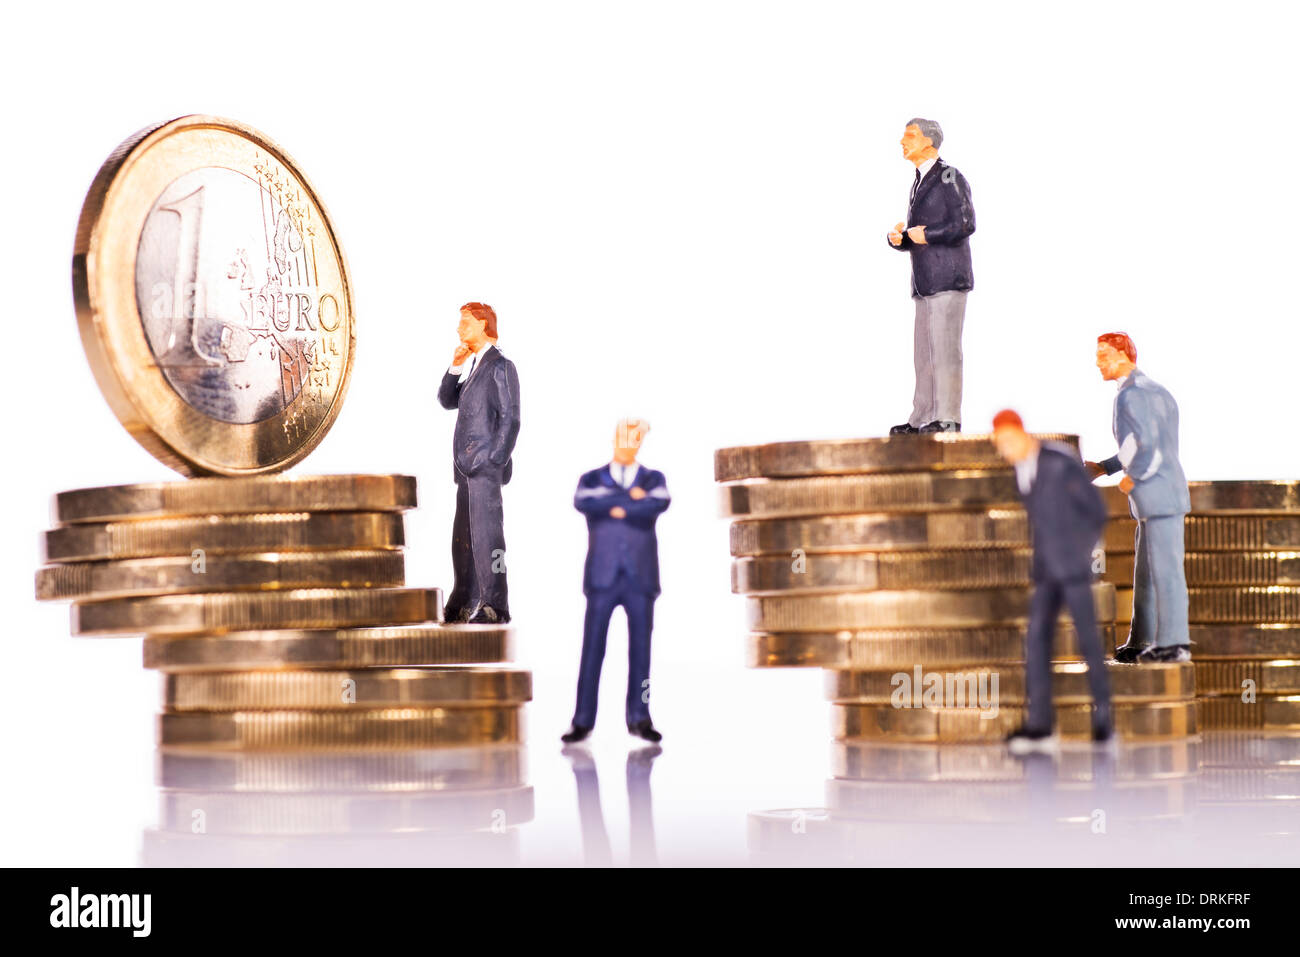 Model figures of business people with euro coins. - Stock Image